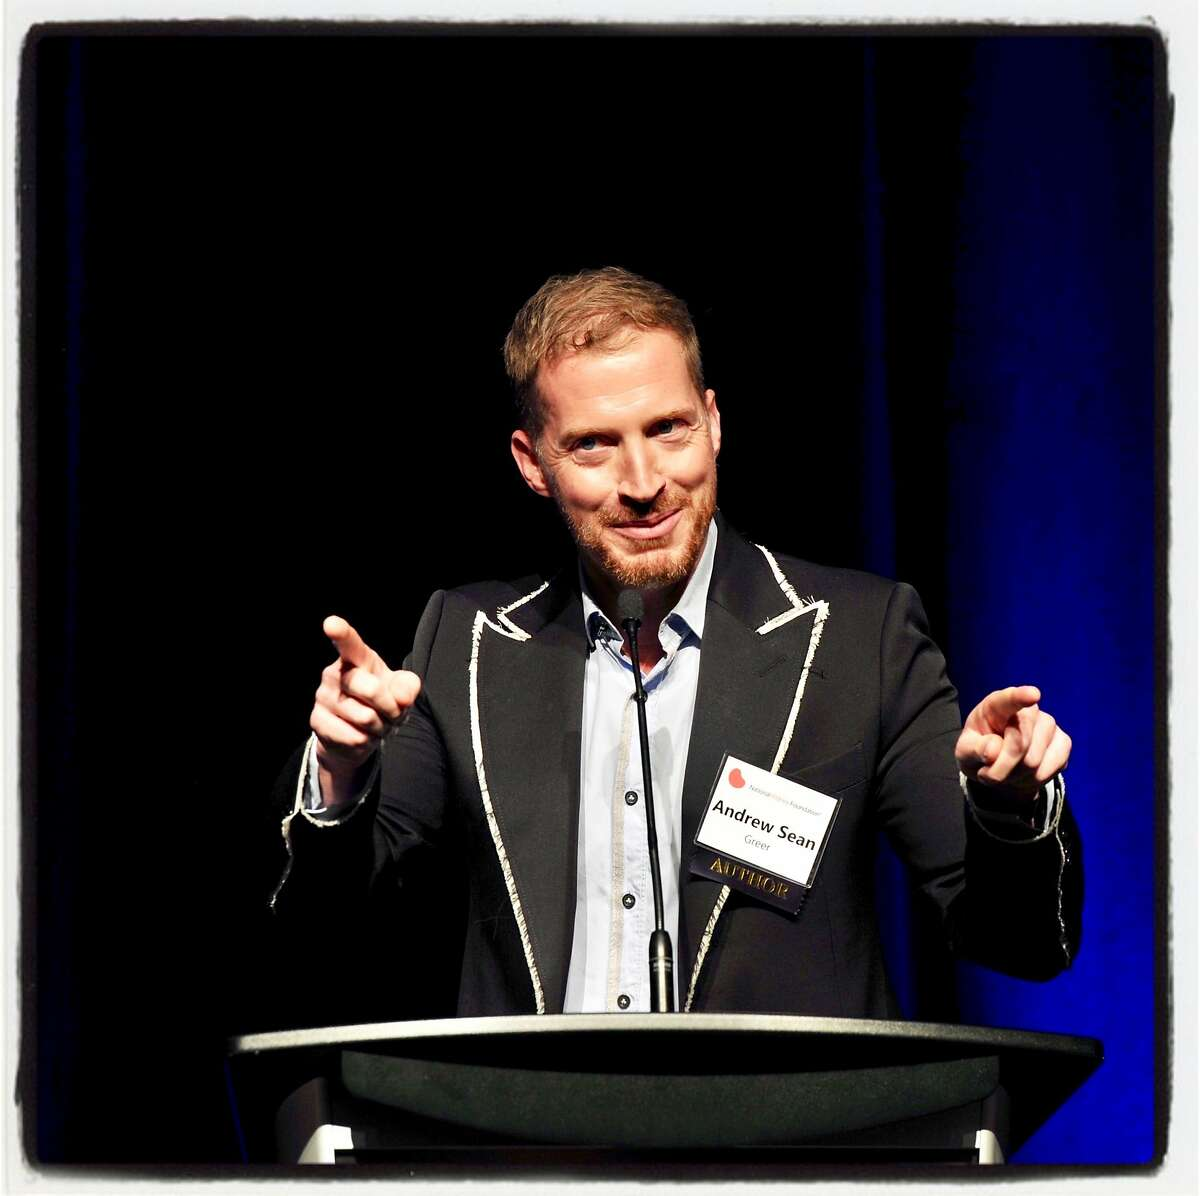 Author Andrew Sean Greer at the National Kidney Foundation's Authors Luncheon. Nov. 3, 2018.